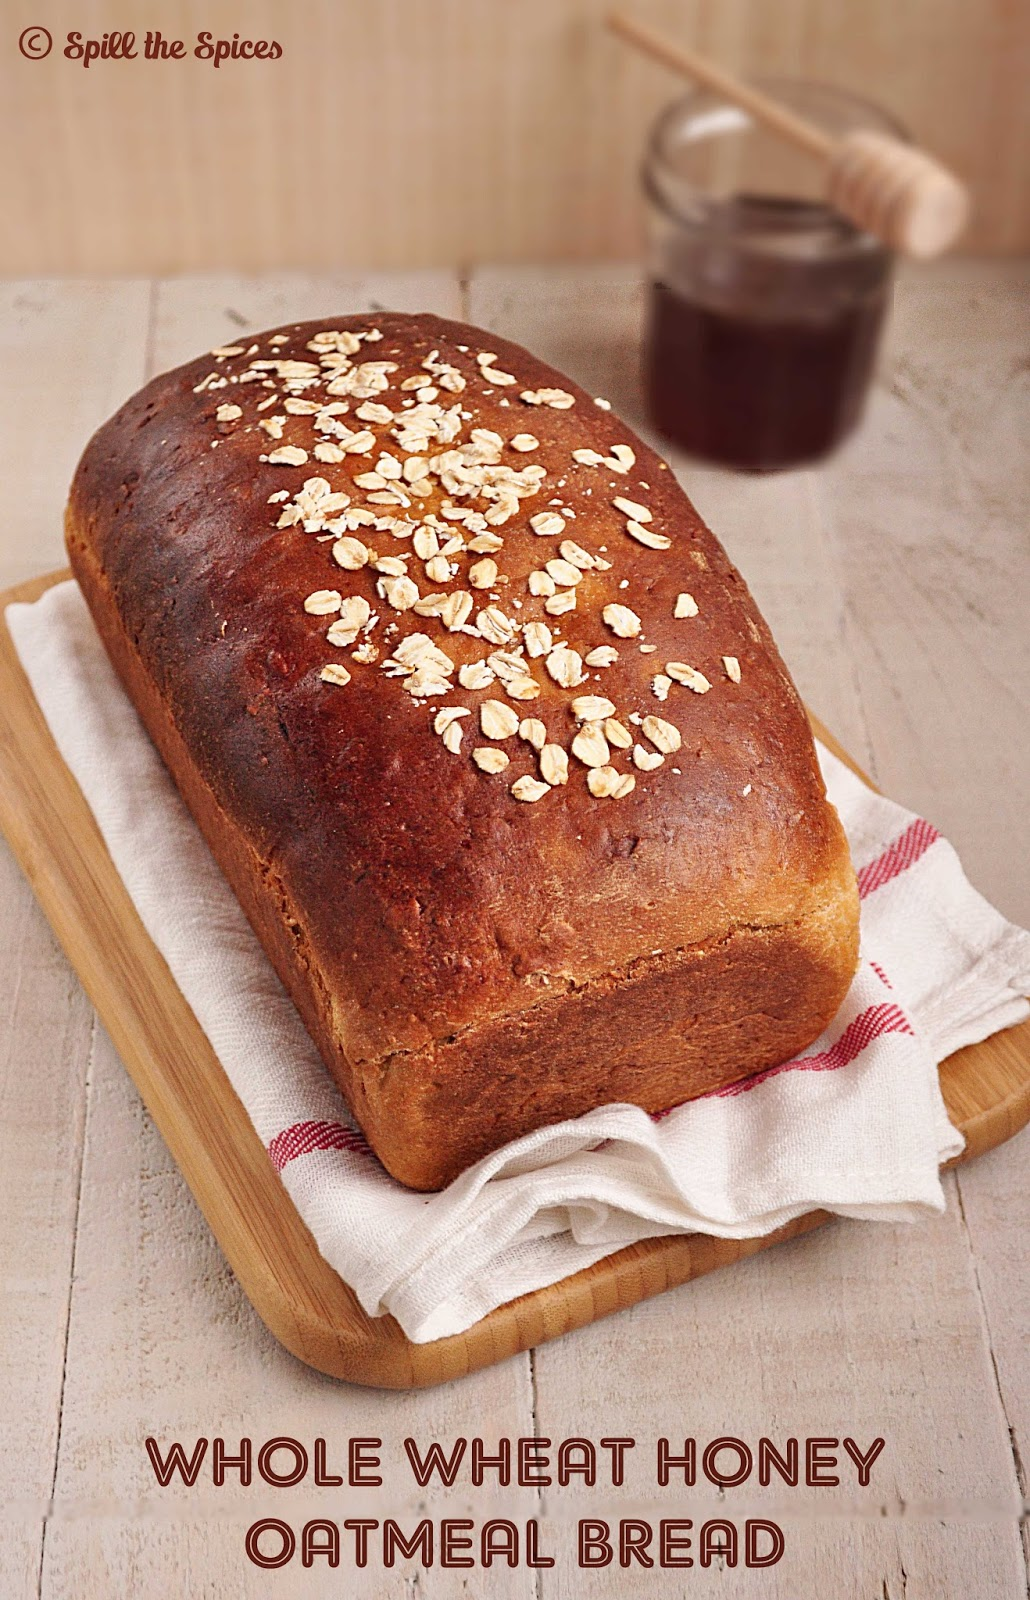 recently joined a bread baking group called bread bakers where each ...